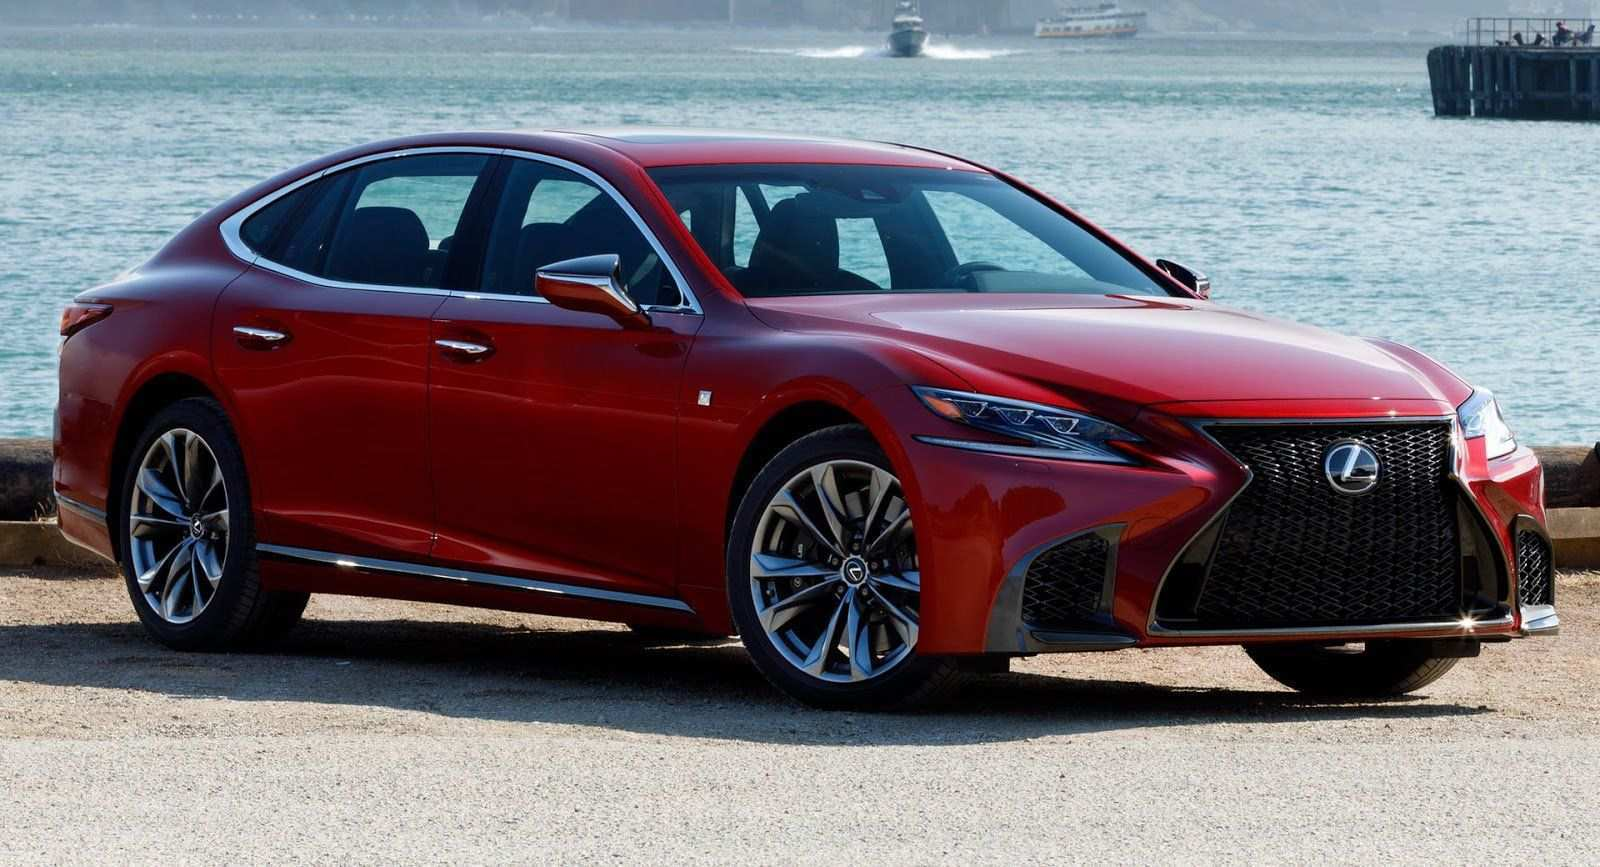 70 Gallery of 2019 Lexus Ls Price Images for 2019 Lexus Ls Price